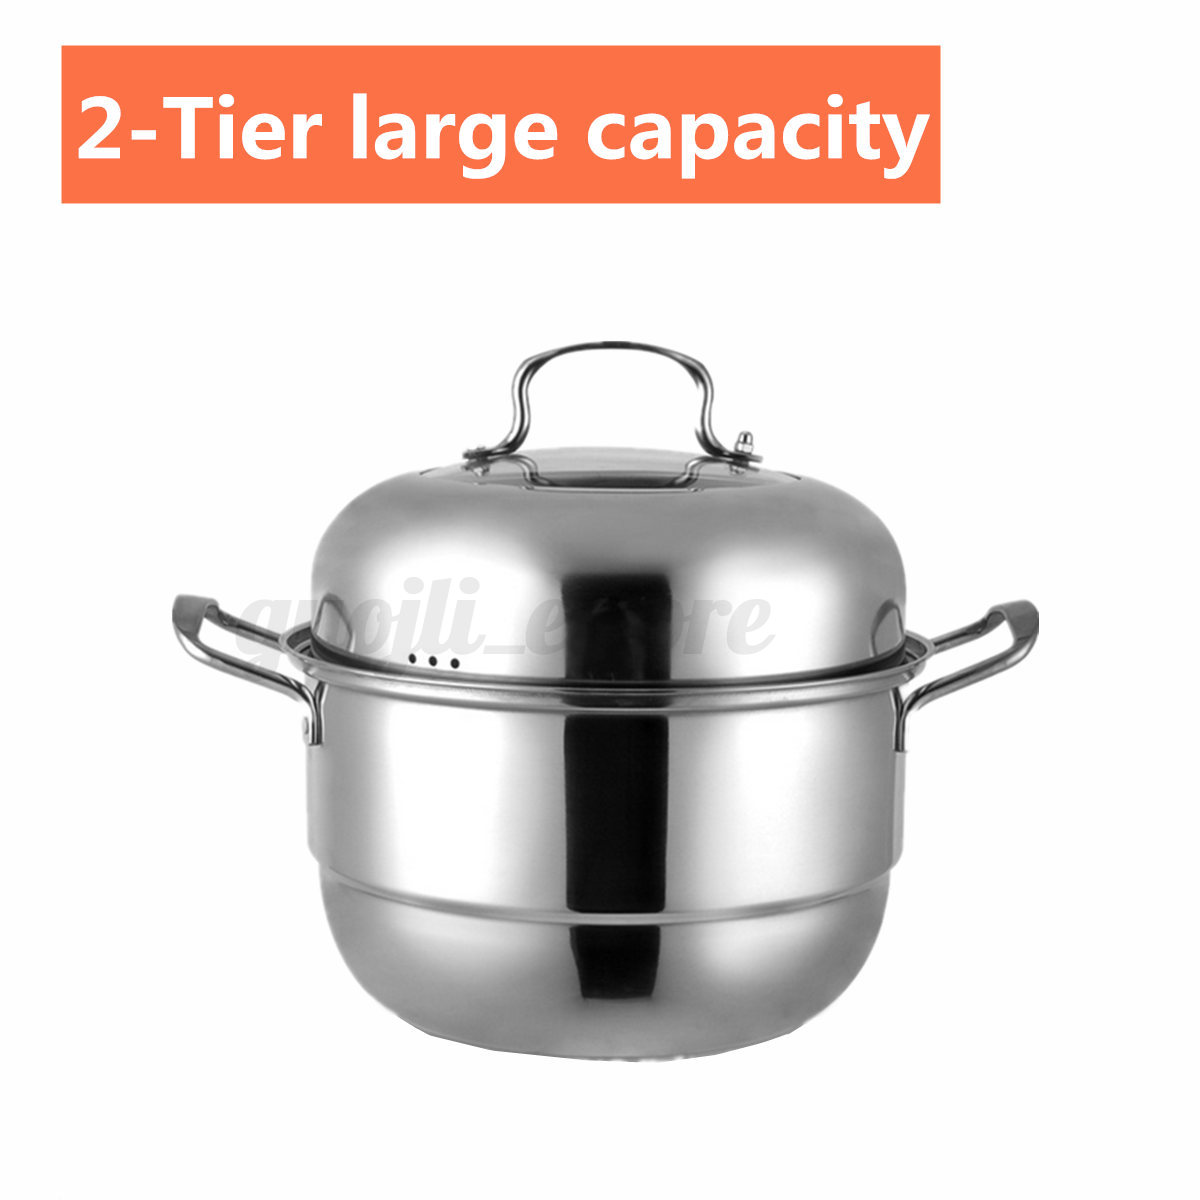 2 Tier Stainless Steel Food Vegetable Steamer Pot Induction Kitchen Multi